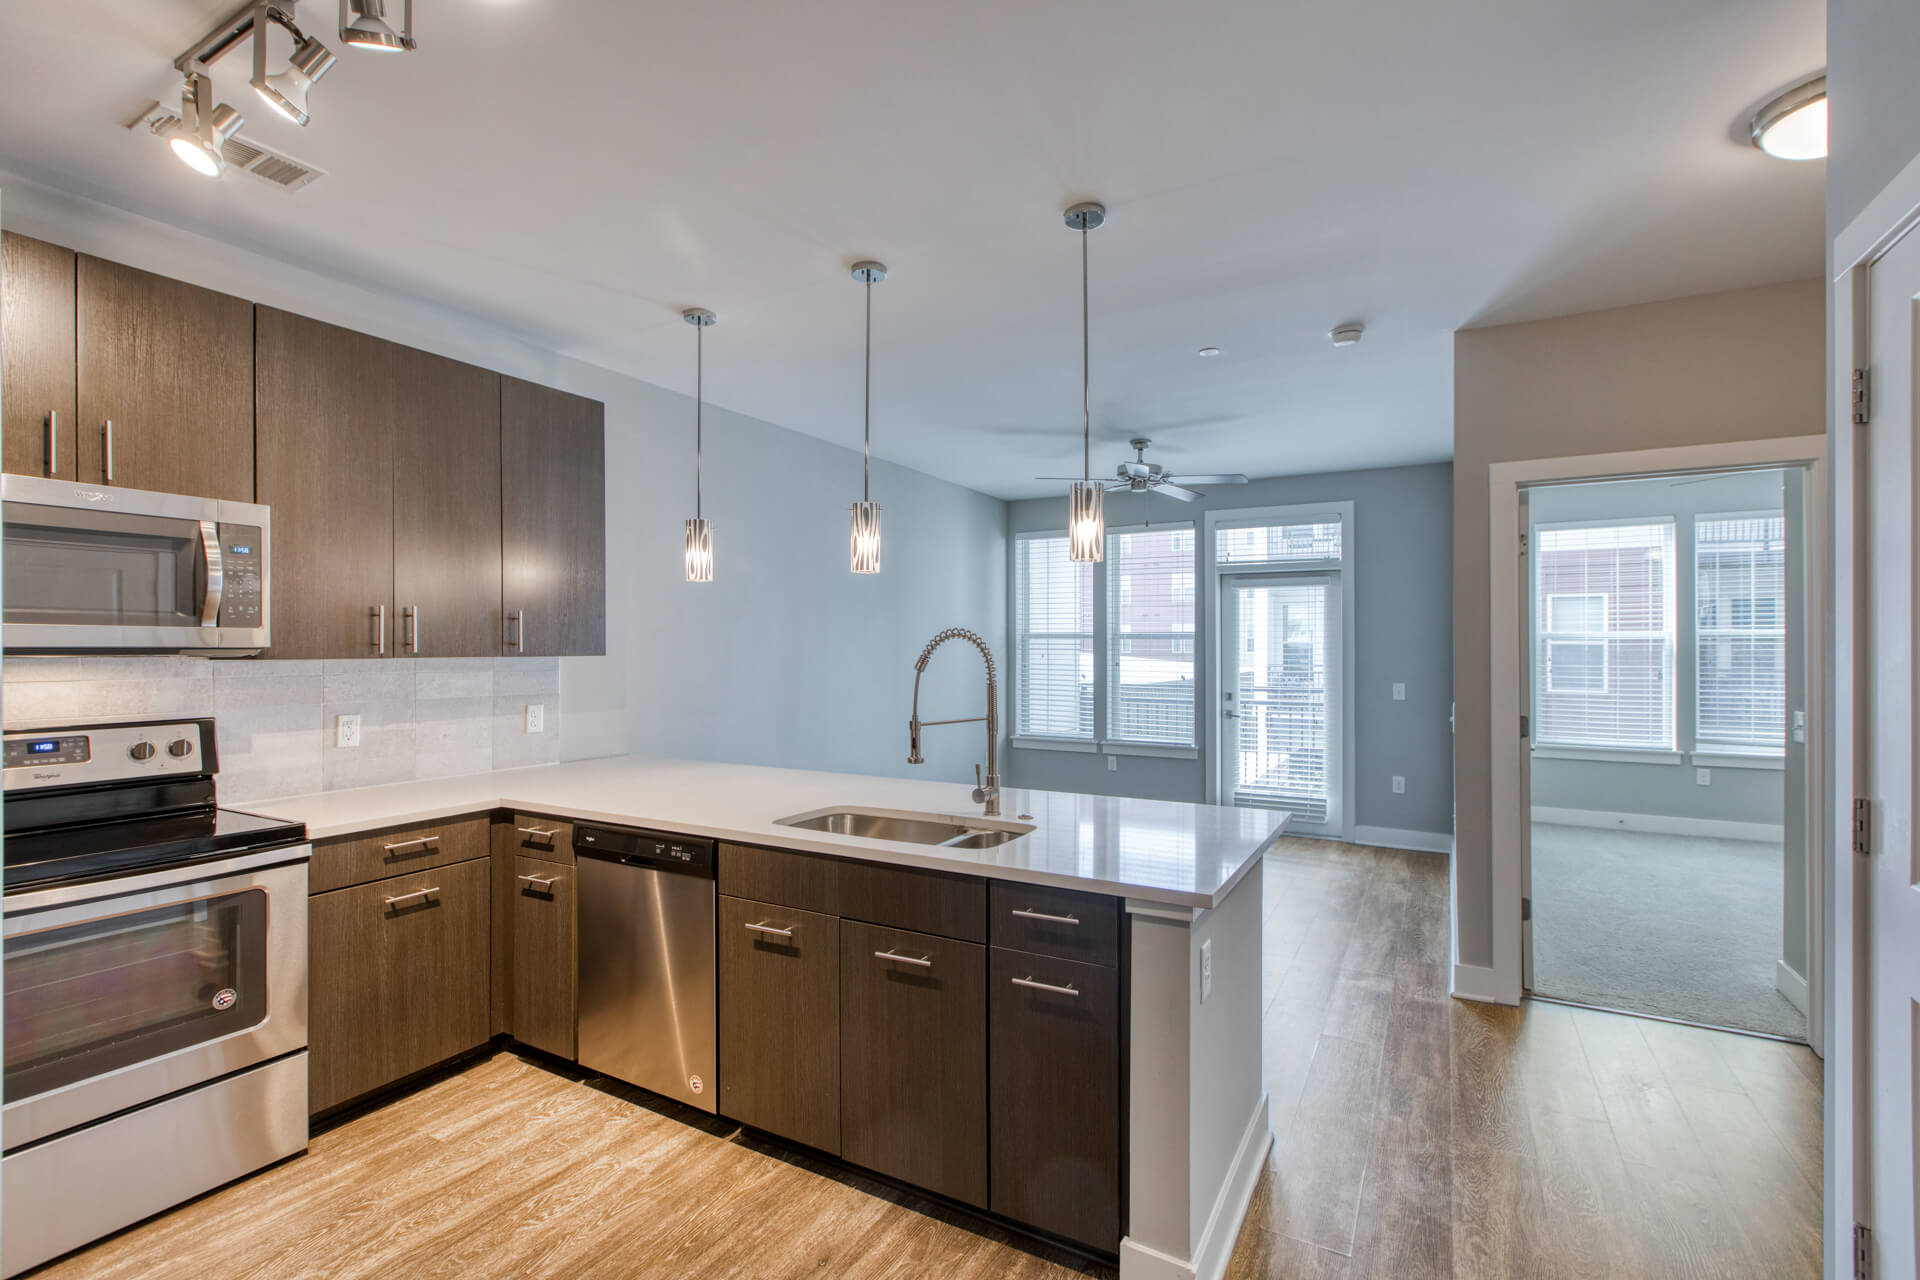 Chef-Inspired Kitchens at Centric LoHi by Windsor, Colorado